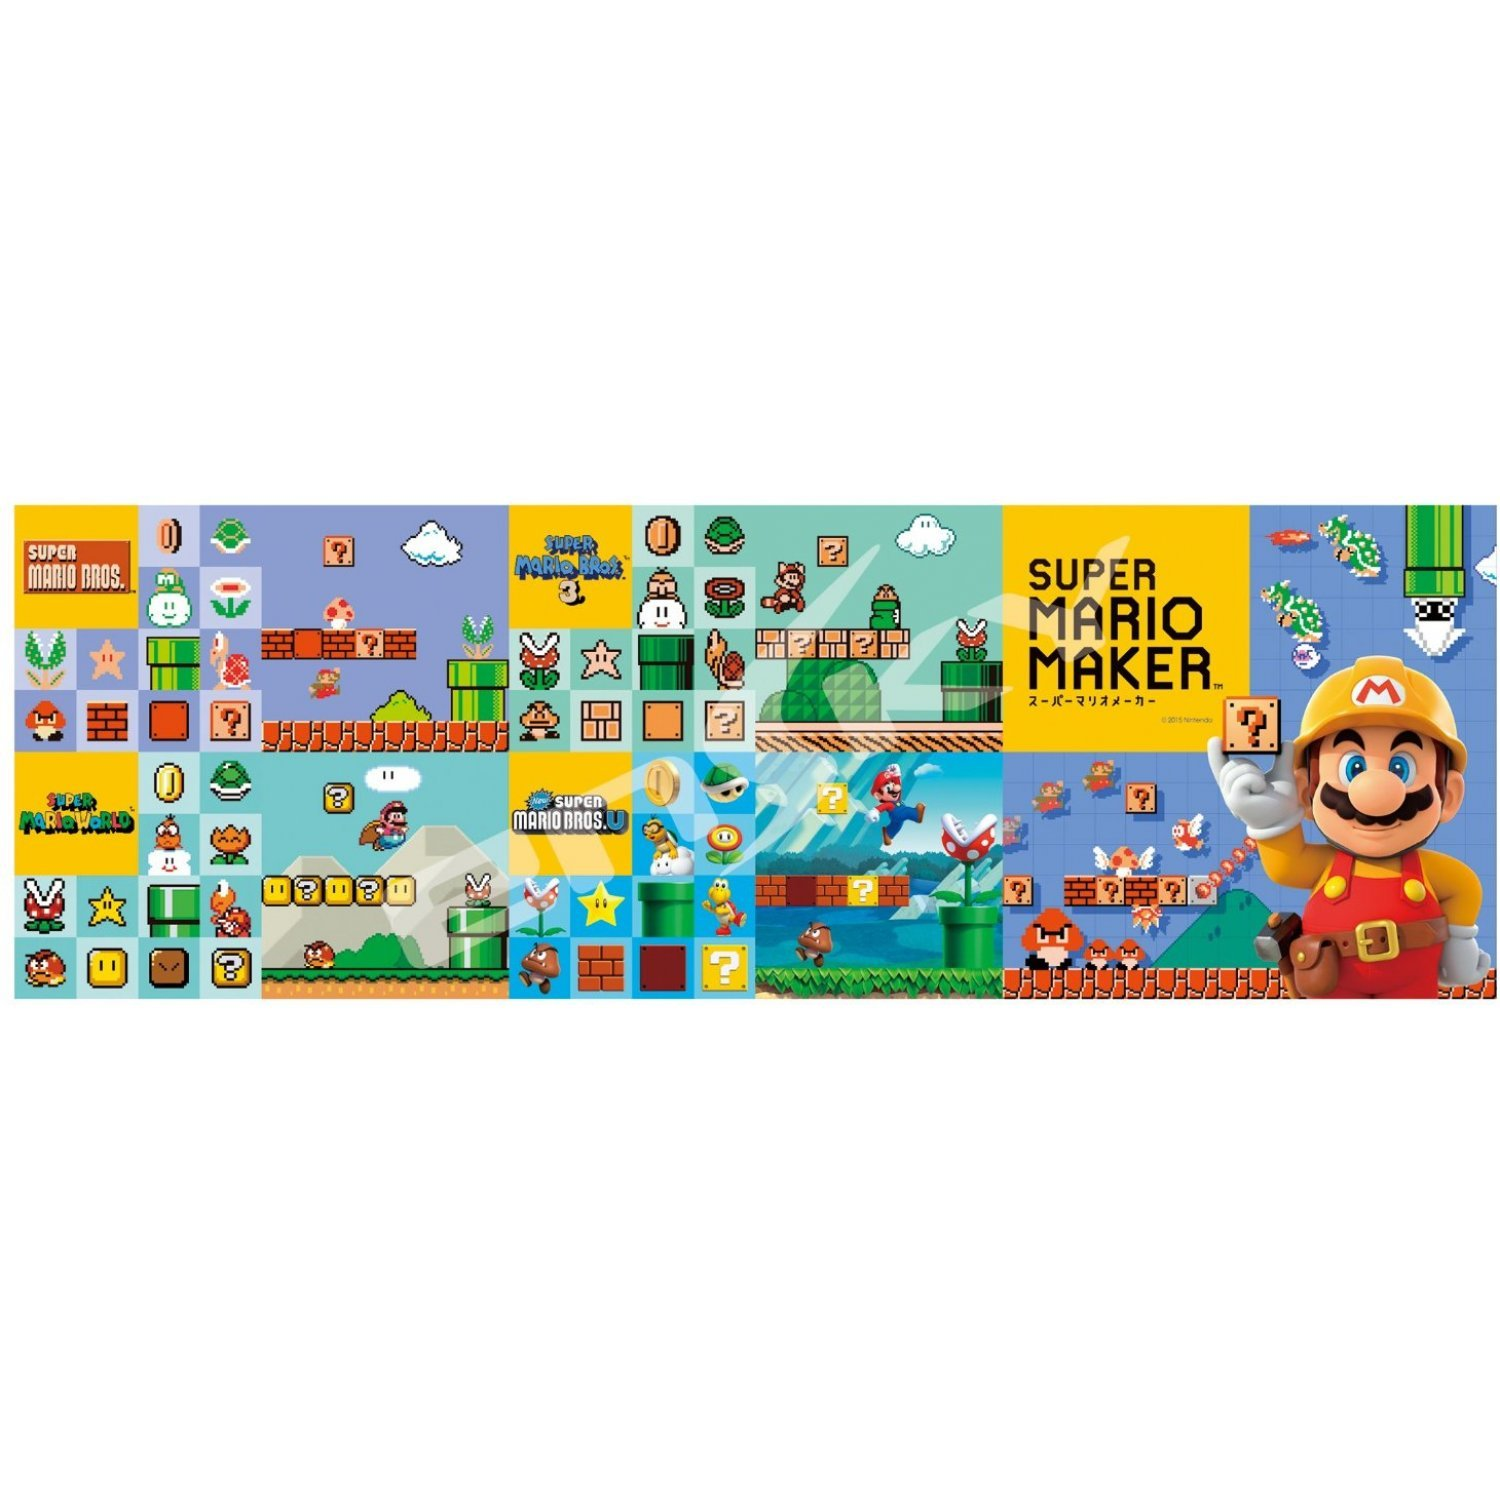 Generous Jigsaw Puzzle Epic Big Thomas Kinkade Puzzles Round Wheel Of Fortune Bonus Puzzle Wooden Block Puzzle Free Youthful Word Search Puzzles YellowWord Search Puzzles Online Super Mario Maker Jigsaw Puzzle: Super Mario History 1985 2015 ..